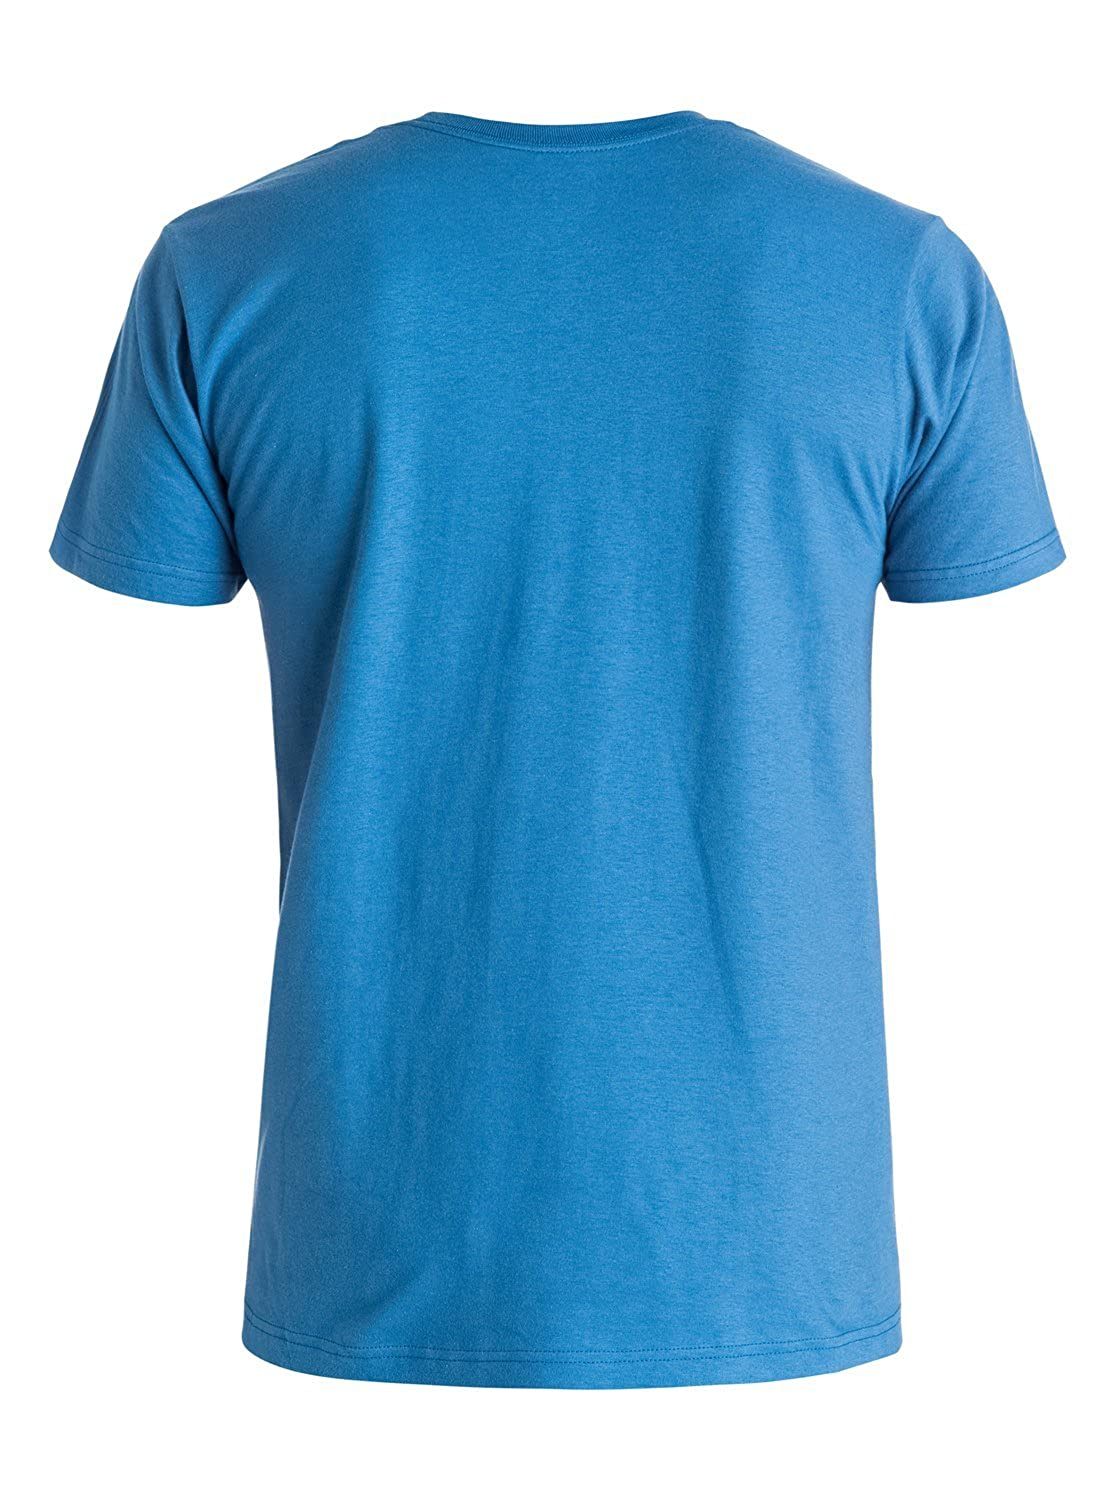 Quiksilver Mens Cali Stamp Mt0 Blue S